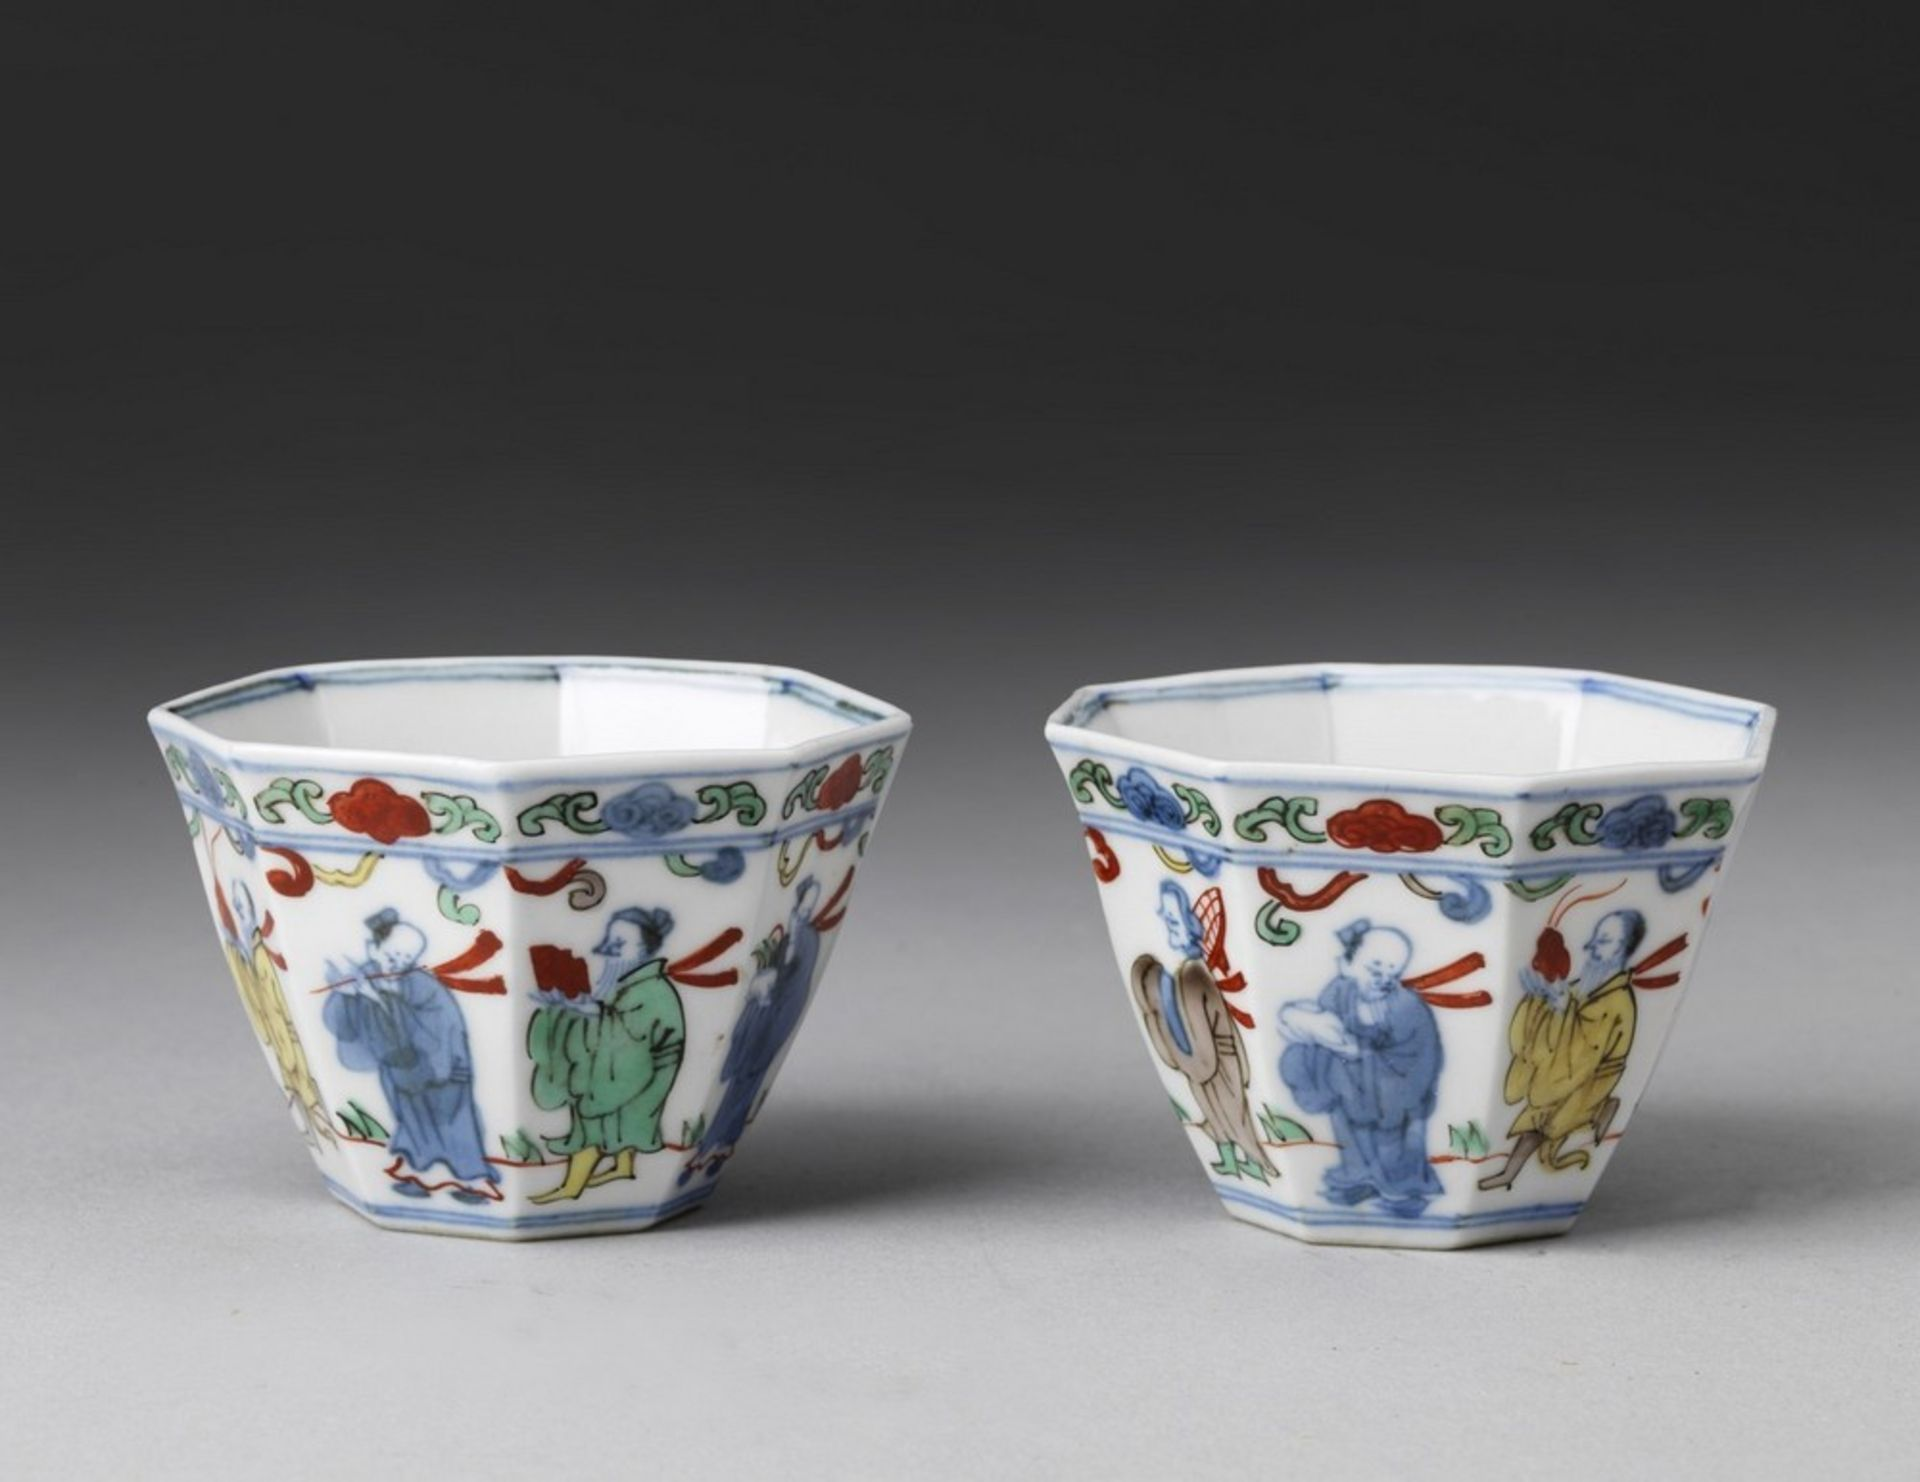 Arte Cinese A pair of wucai porcelain cups China, Qing dynasty, 18th century (?) . - Image 2 of 3